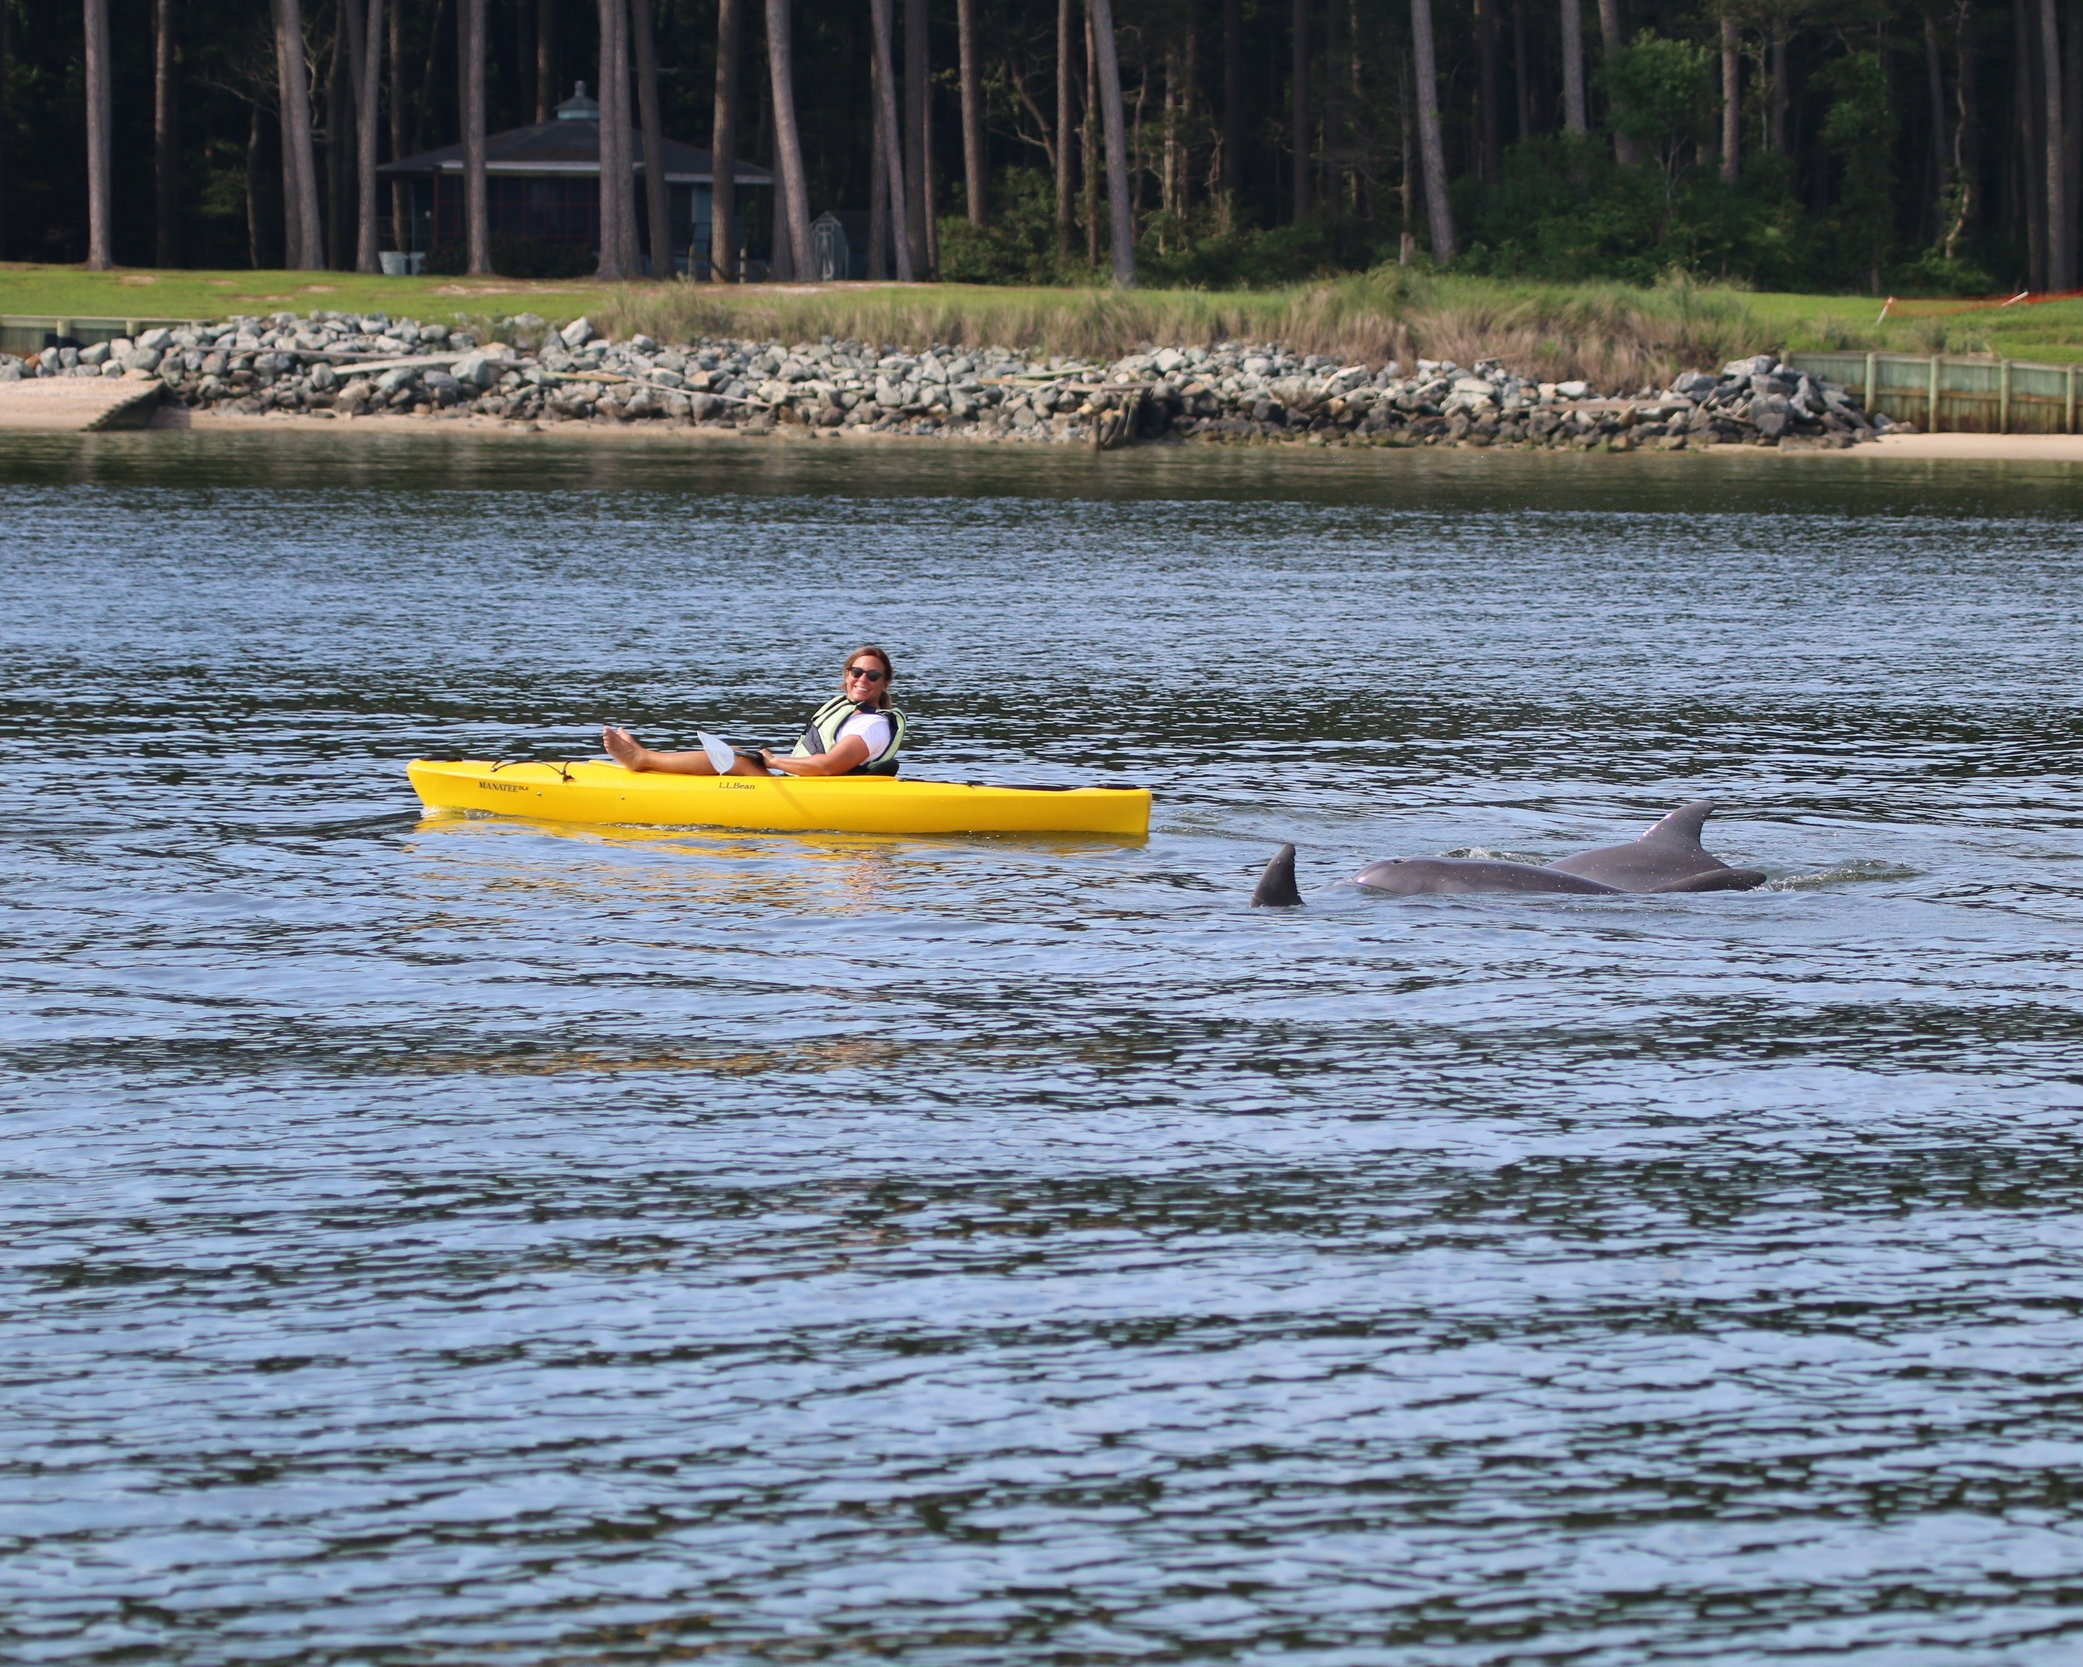 Janet Mann kayaking with dolphins in the Potomac River Photo credit Ann-Marie Jacoby, NMFS permit 19403, Potomac-Chespakeake Dolphin Project.